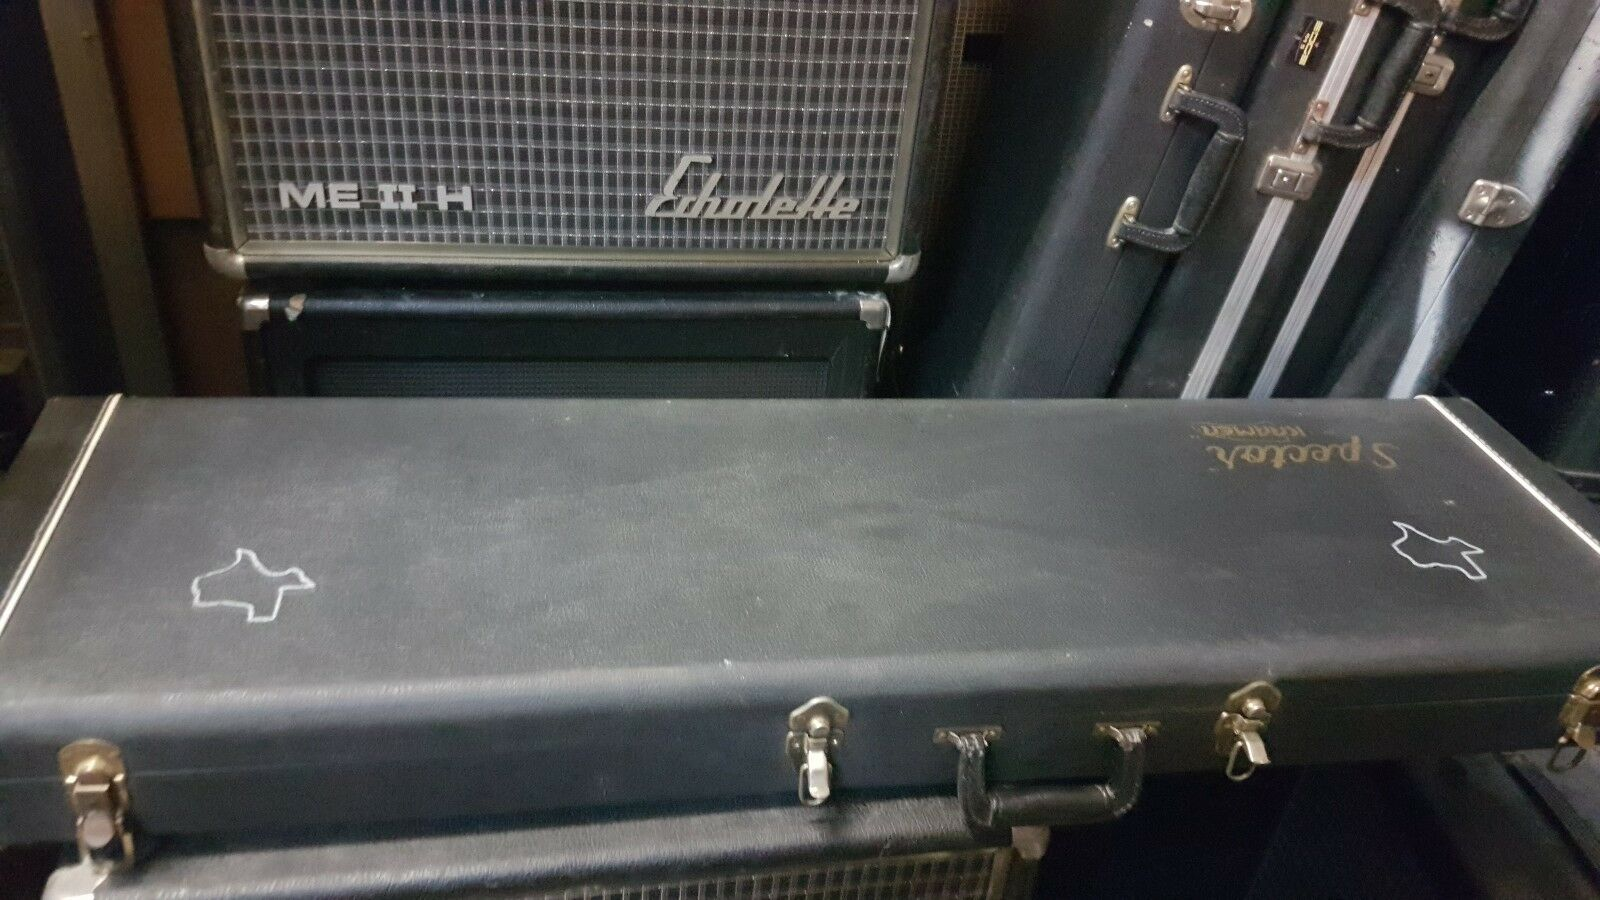 1989 SPECTOR BASS CASE - made in USA